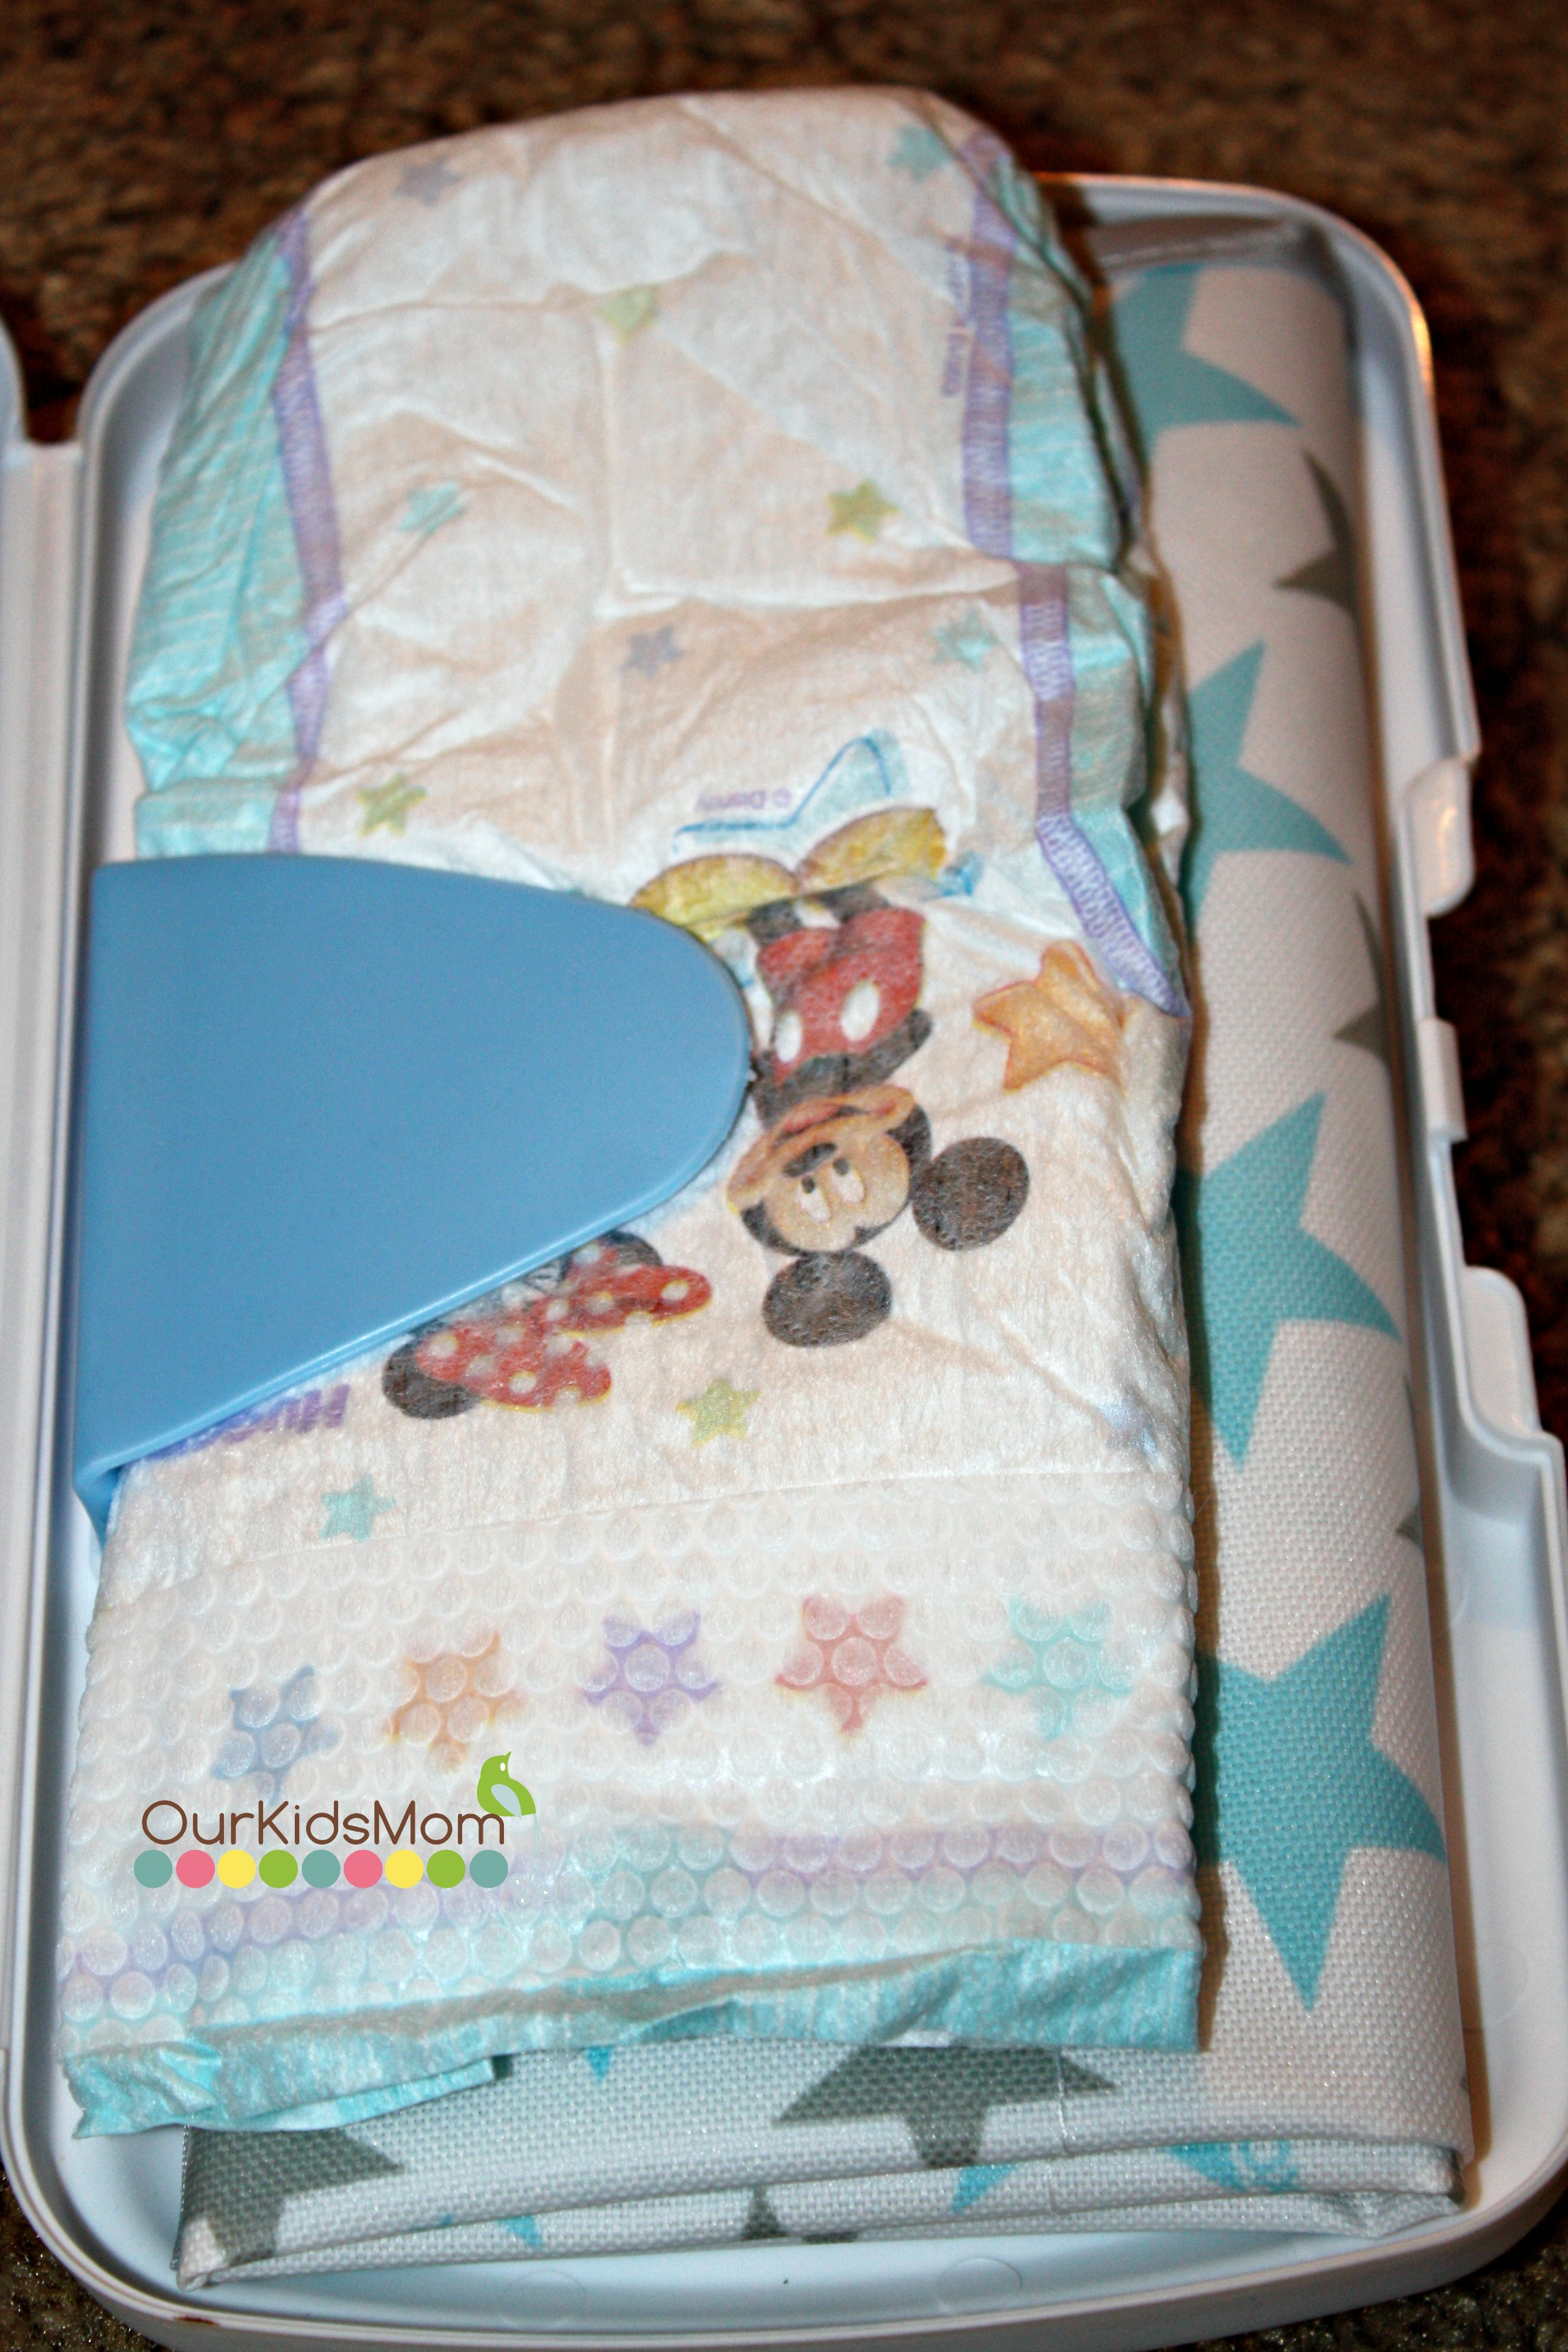 Change Mat and diaper holder